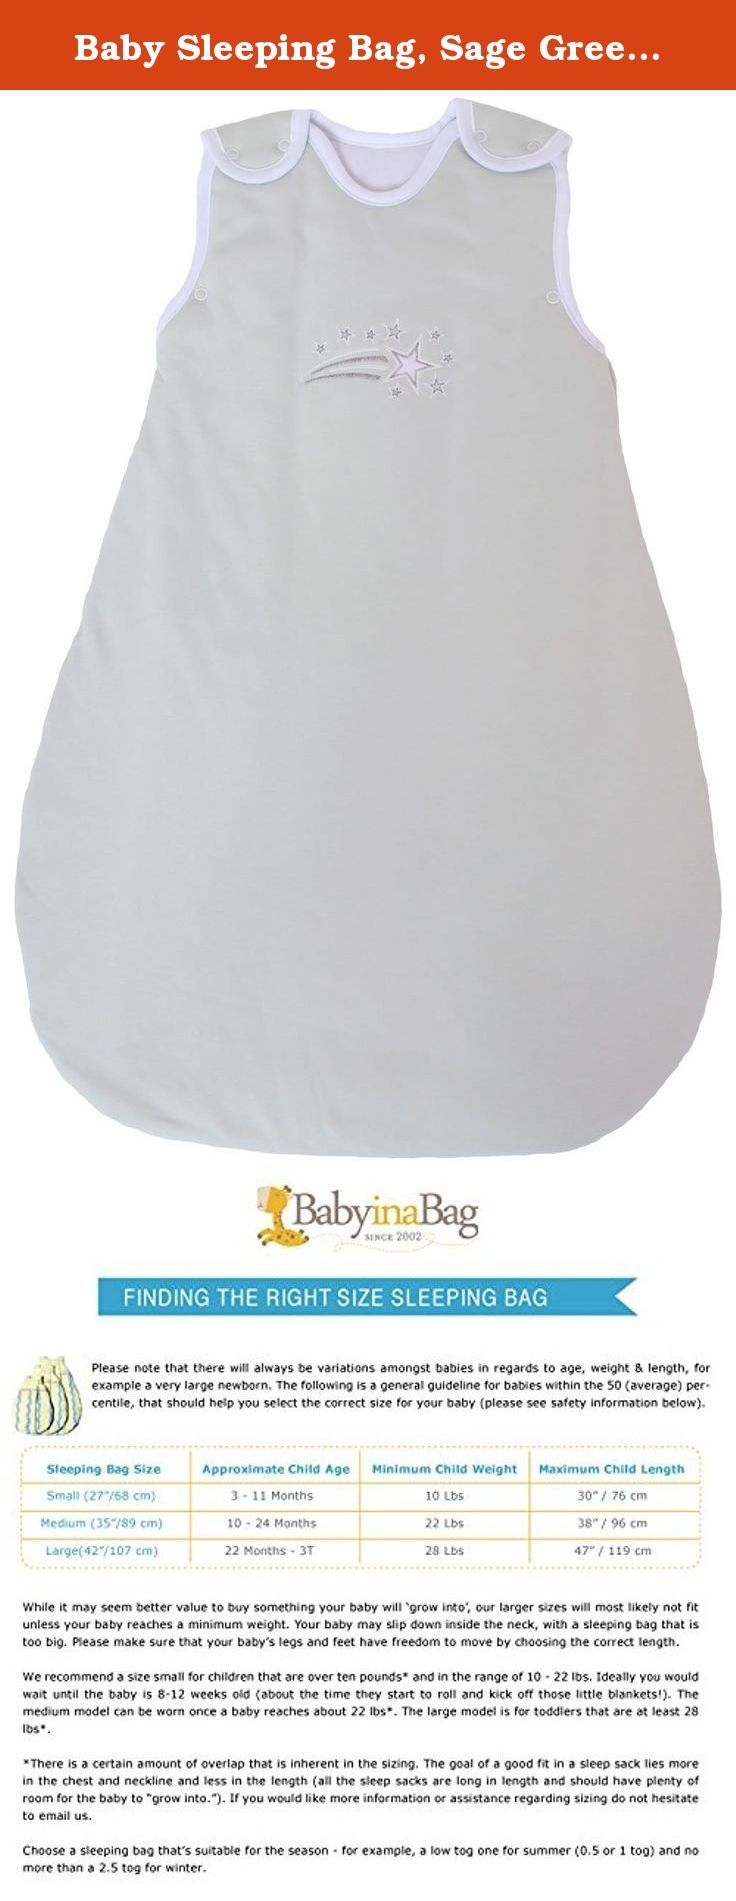 Baby Sleeping Bag, Sage Green, 2.5 Togs Winter Model Quilted and Double Layered (Large (22 mos - 3T)). Our high quality baby sleep sacks, also called baby sleeping bags are available in three different sizes from infants to the hard to find toddler size common to Europe. Whether you are looking for a practical baby blanket for yourself, a unique baby gift for a friend's baby shower, or are a proud grandparent, a BabyinaBag sleep sack will meet your individual needs. Used safely in Europe…